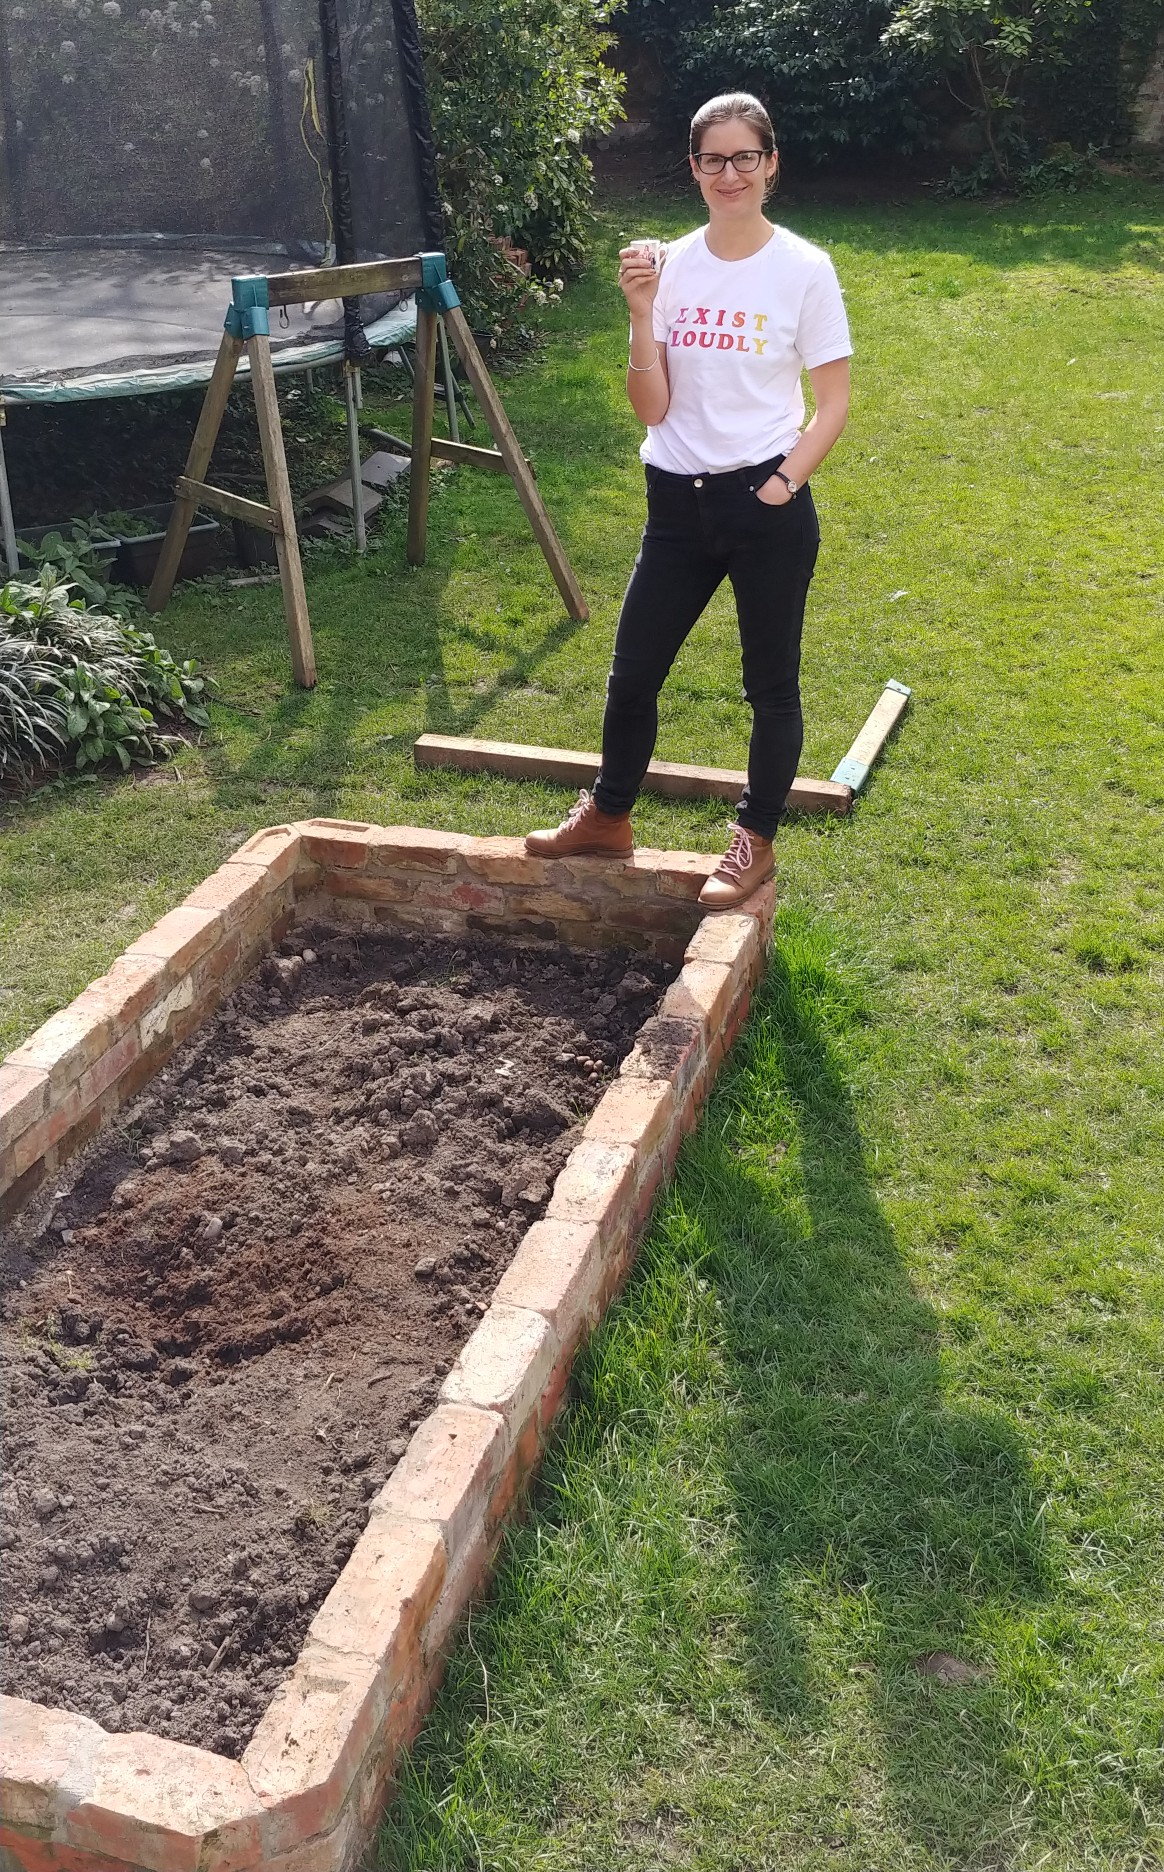 How To Build Raised Beds From Reclaimed Bricks Alice De Araujo